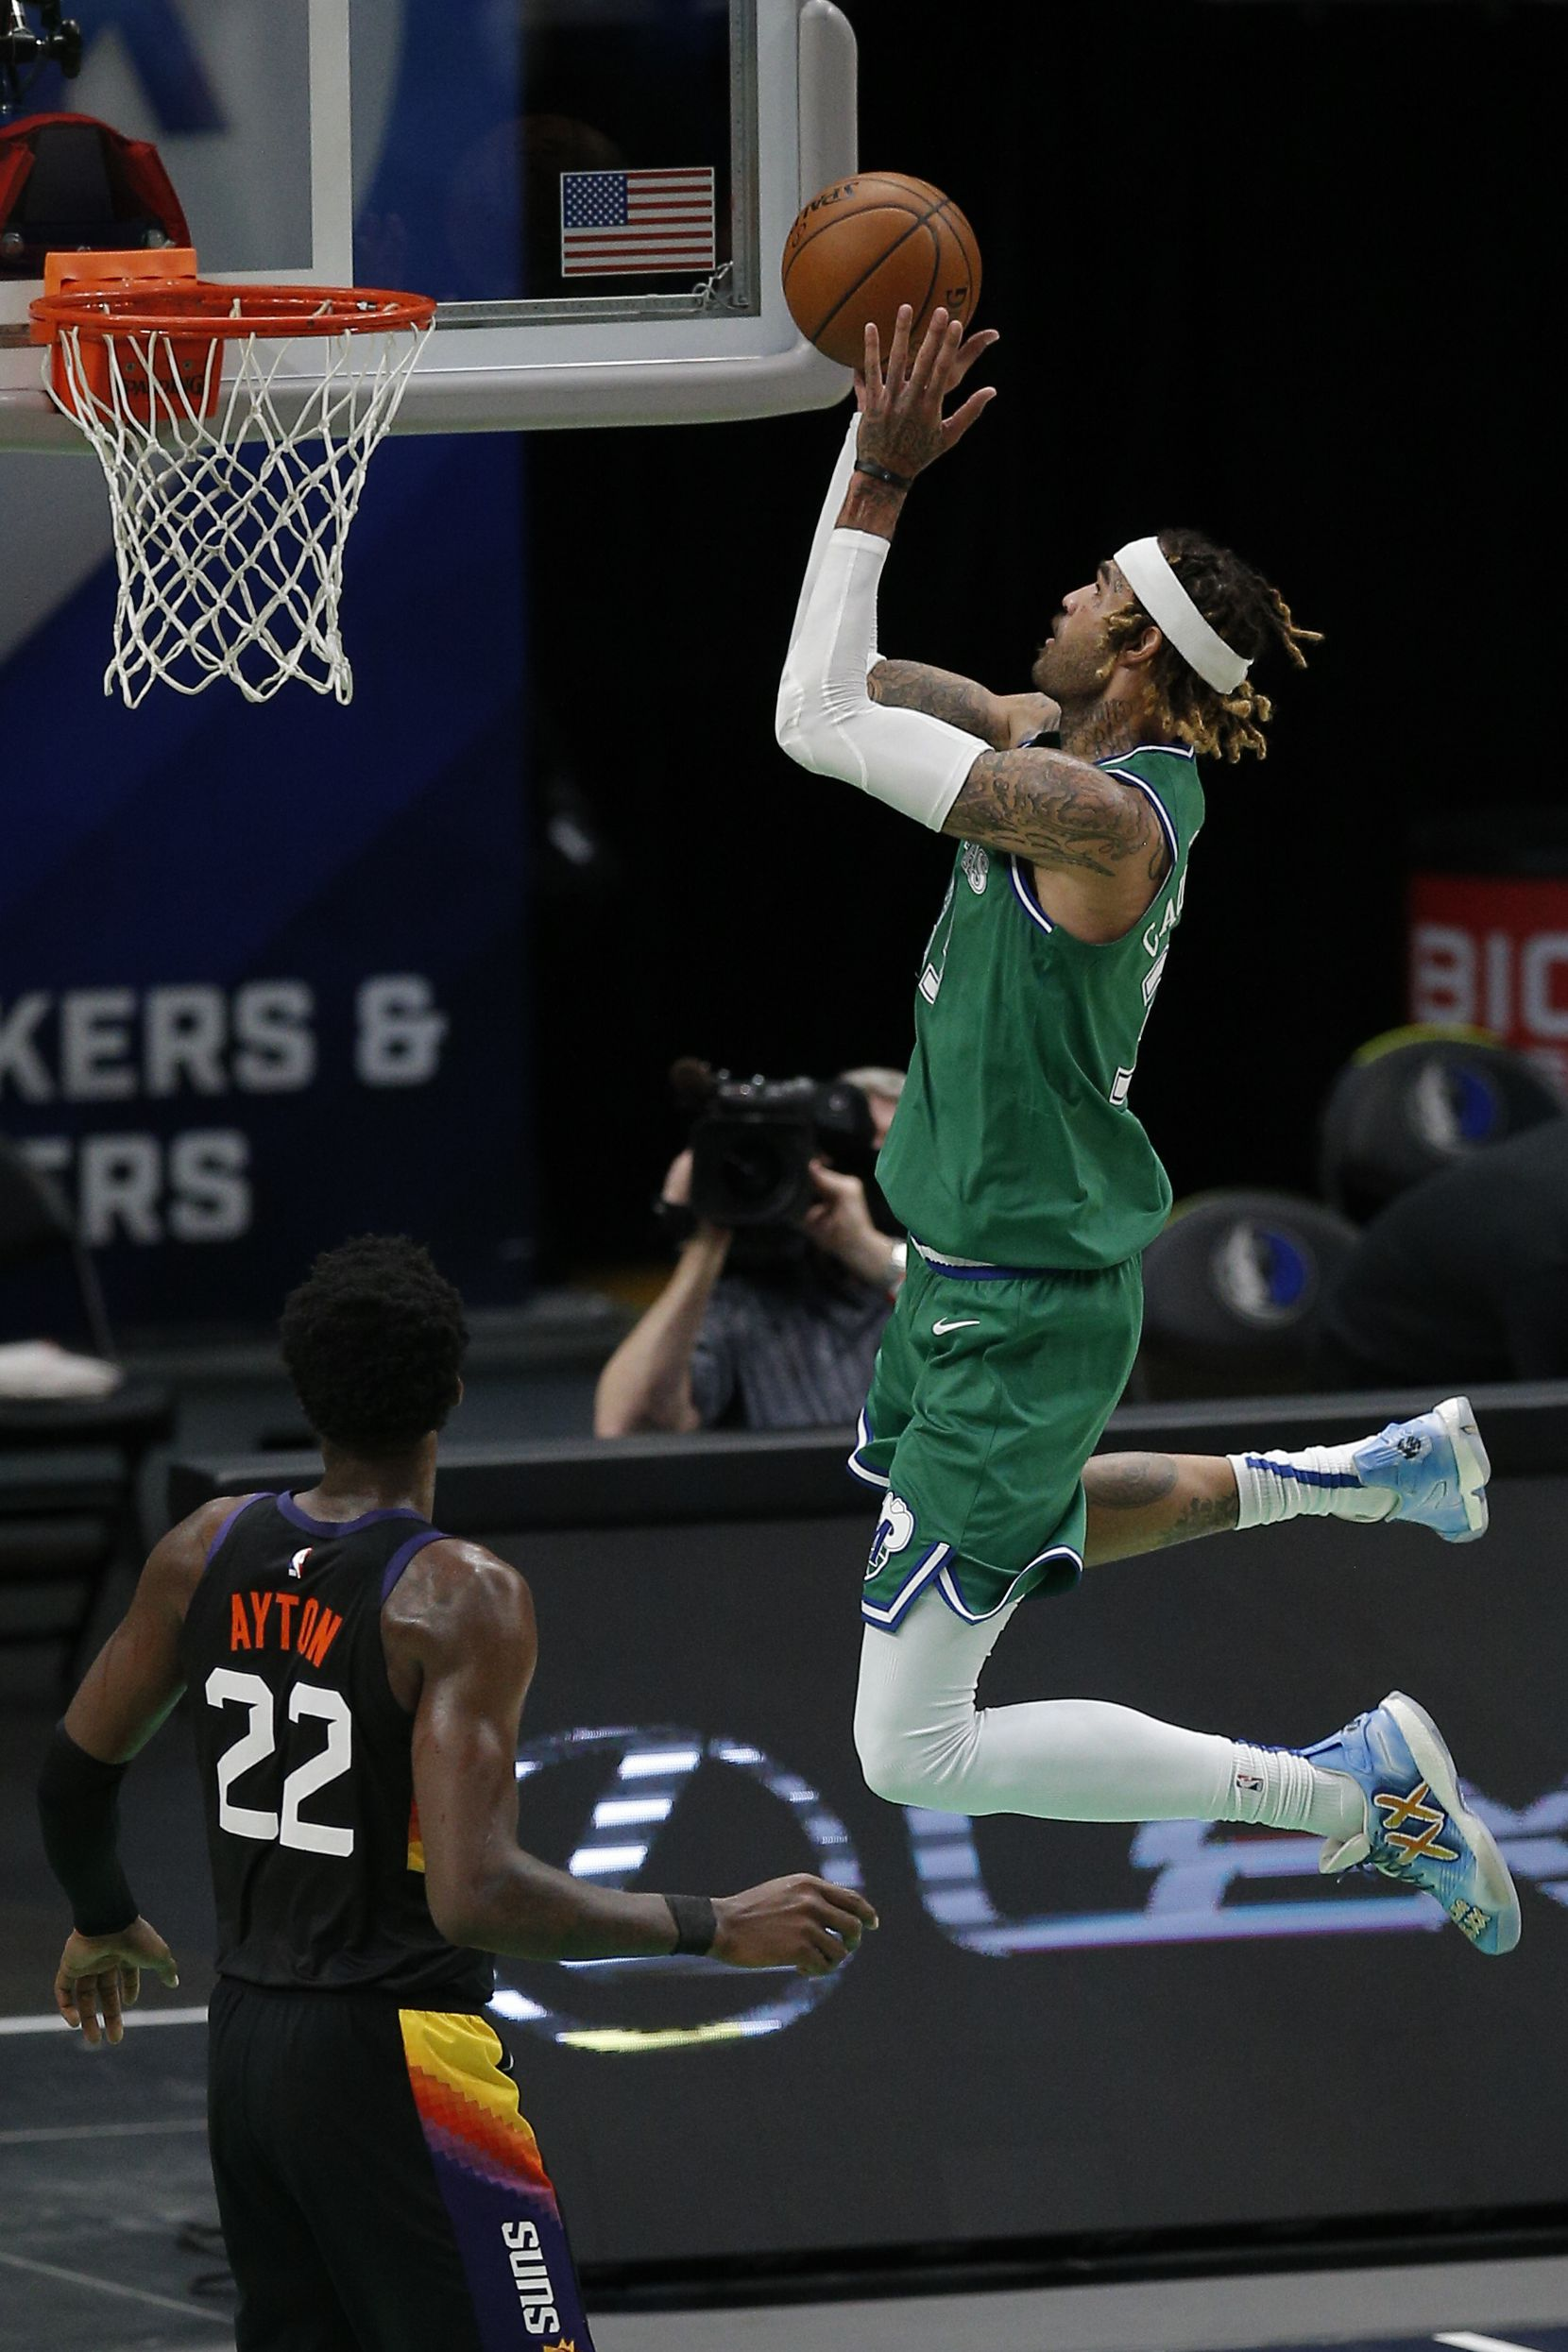 Dallas Mavericks forward Willie Cauley-Stein (33) attempts a layup as Phoenix Suns forward Deandre Ayton (22) defends during the first half of an NBA basketball game in Dallas, Saturday, January 30, 2021. (Brandon Wade/Special Contributor)